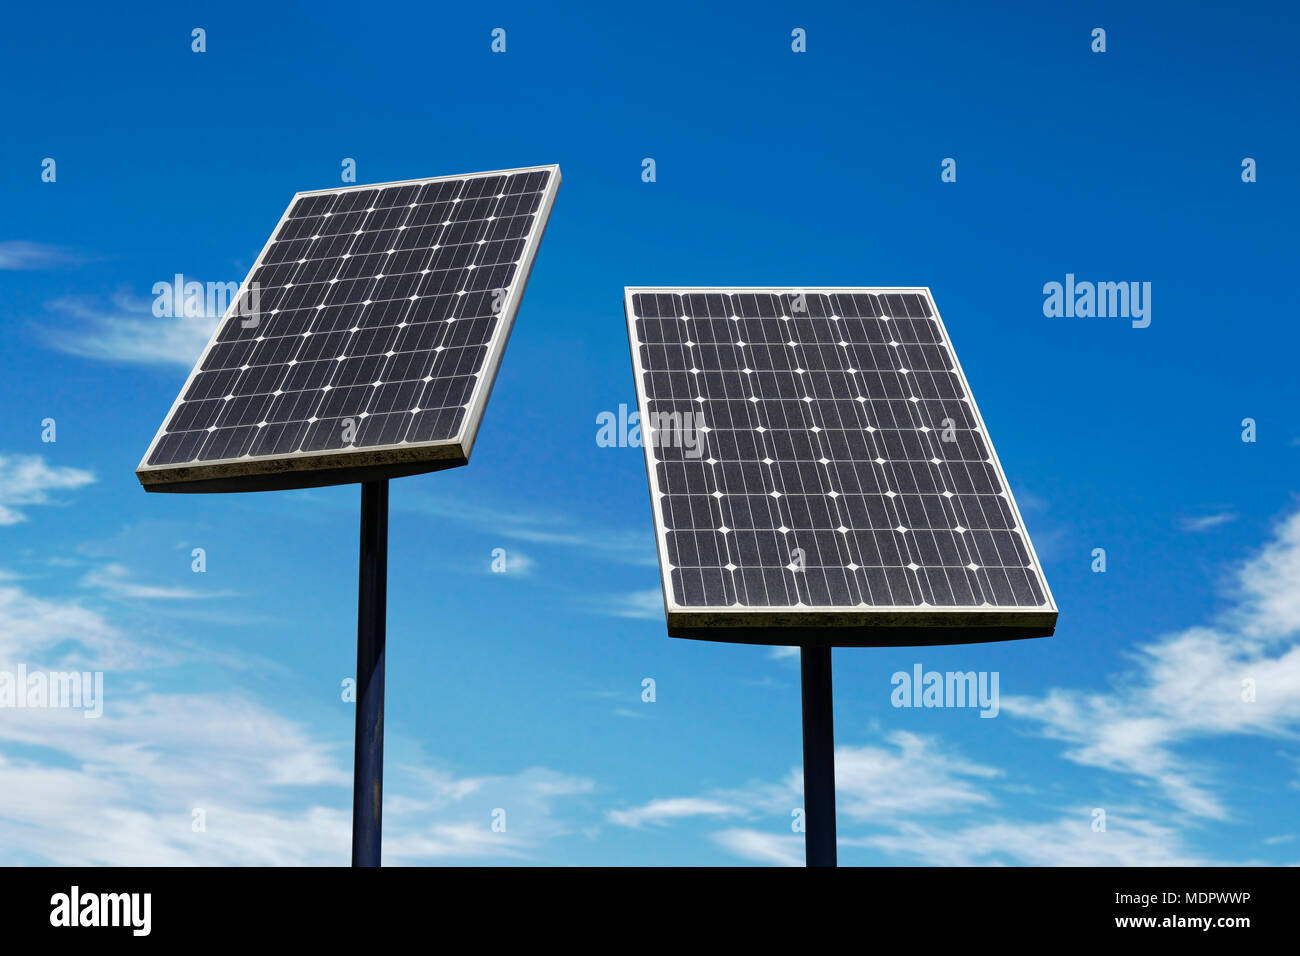 Small Solar Panels Against a Blue Sky - Stock Image